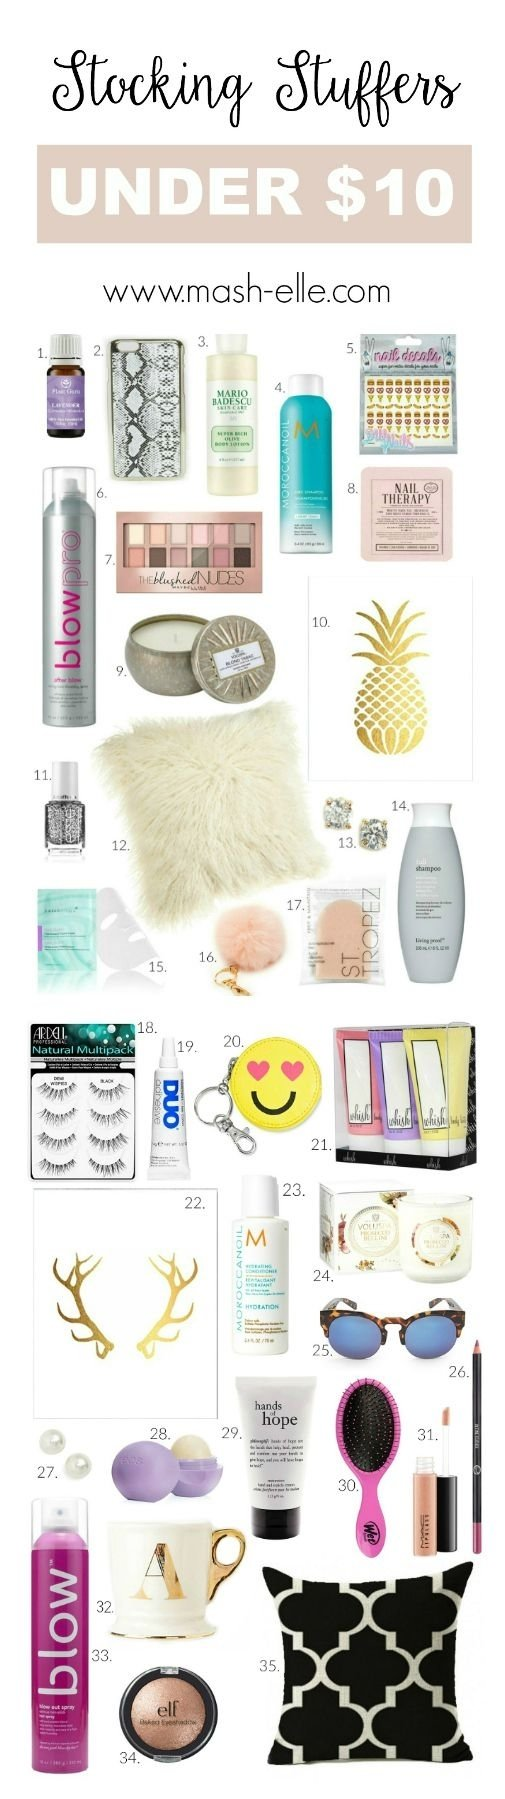 36 best gift ideas images on pinterest | gift ideas, christmas